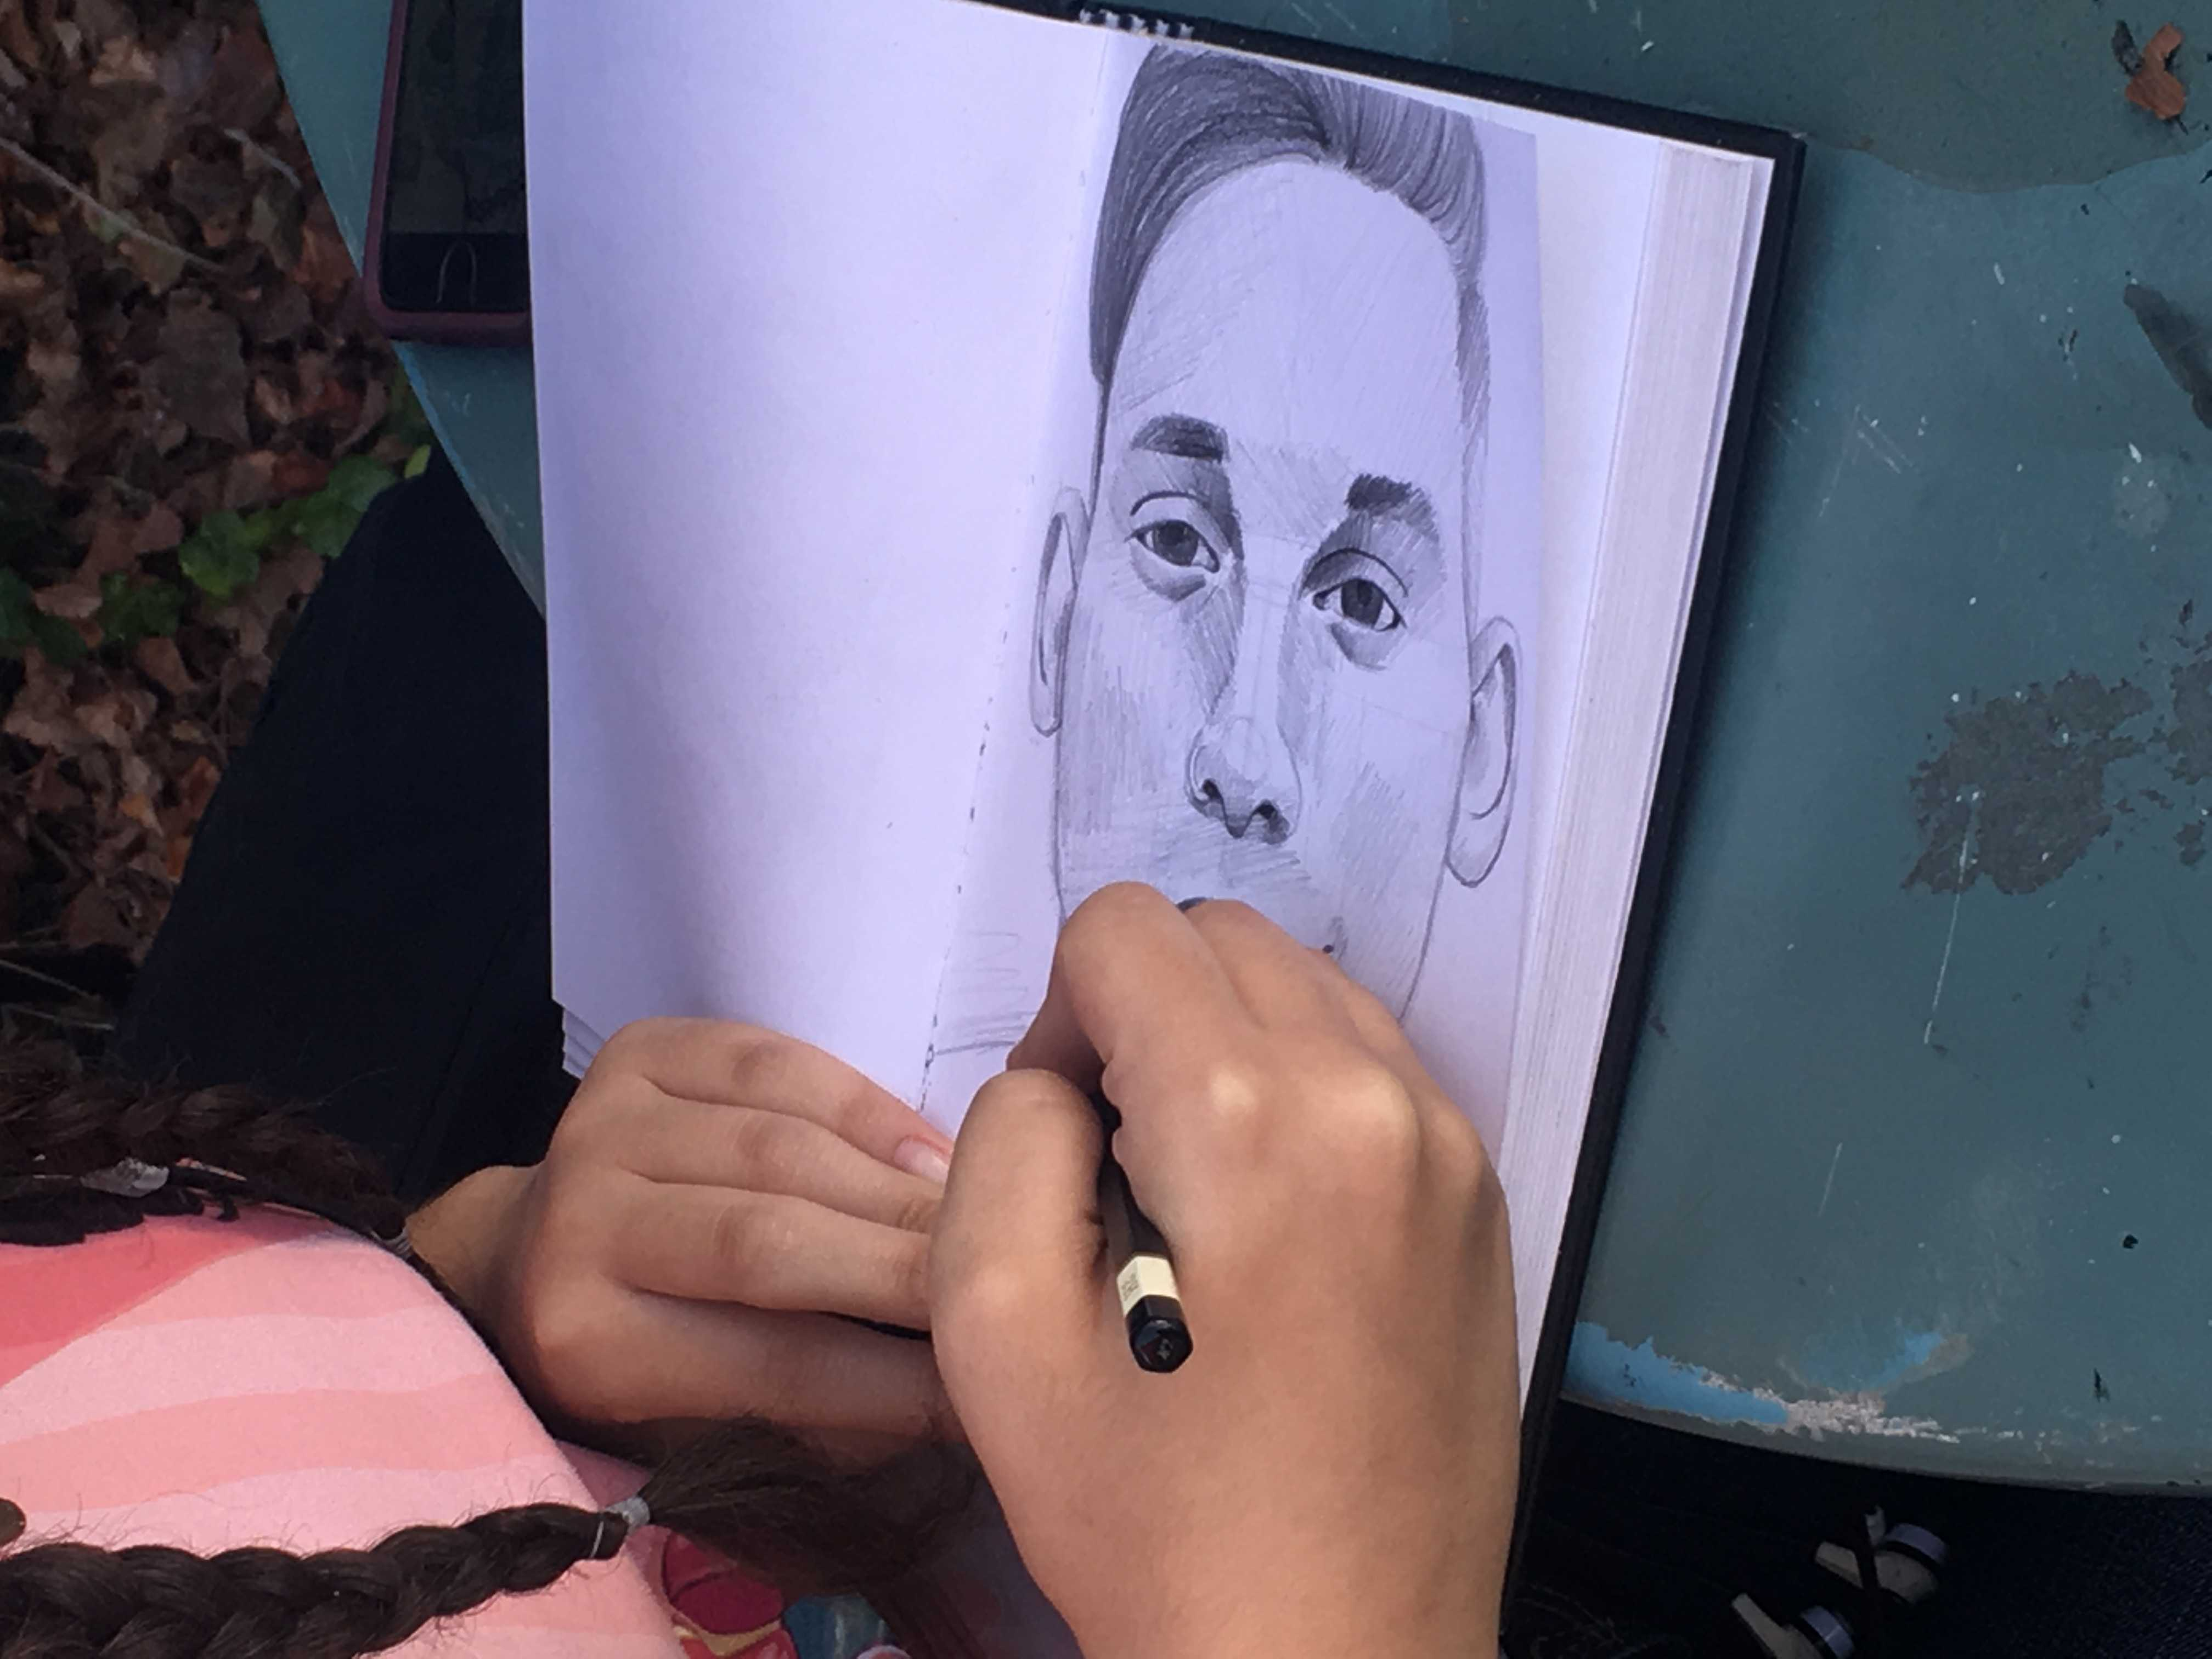 Student+pictured+drawing+realistic+portrait